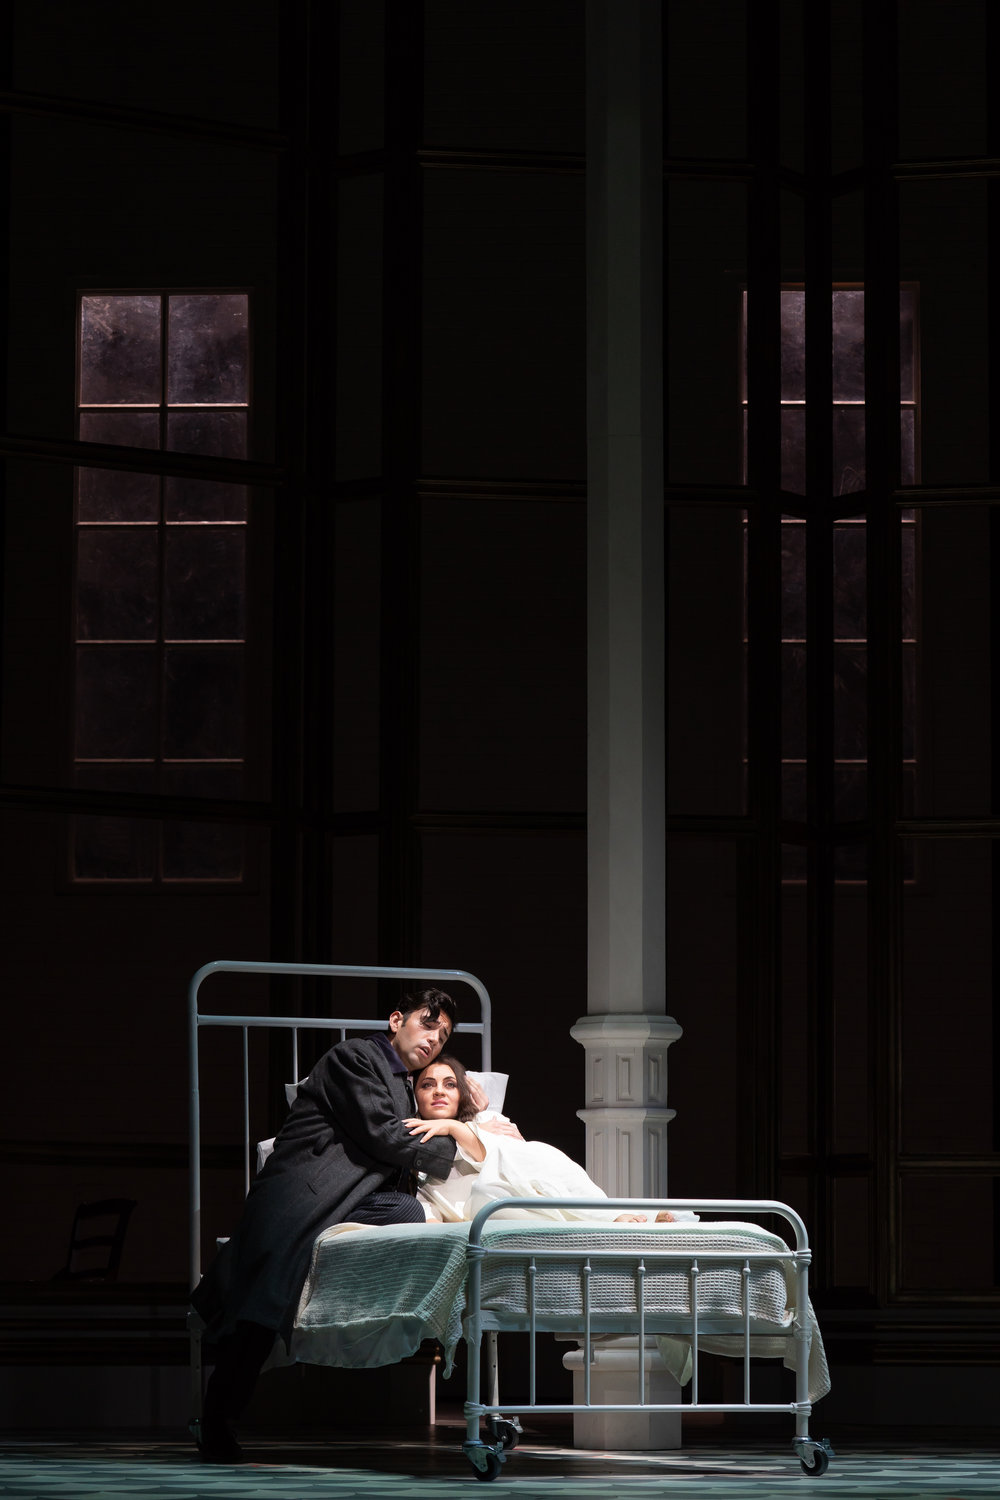 Alfredo (Joshua Guerrero) comforts Violetta (Venera Gimadieva) in her final moments. Photo by Scott Suchman; courtesy of the Washington National Opera.